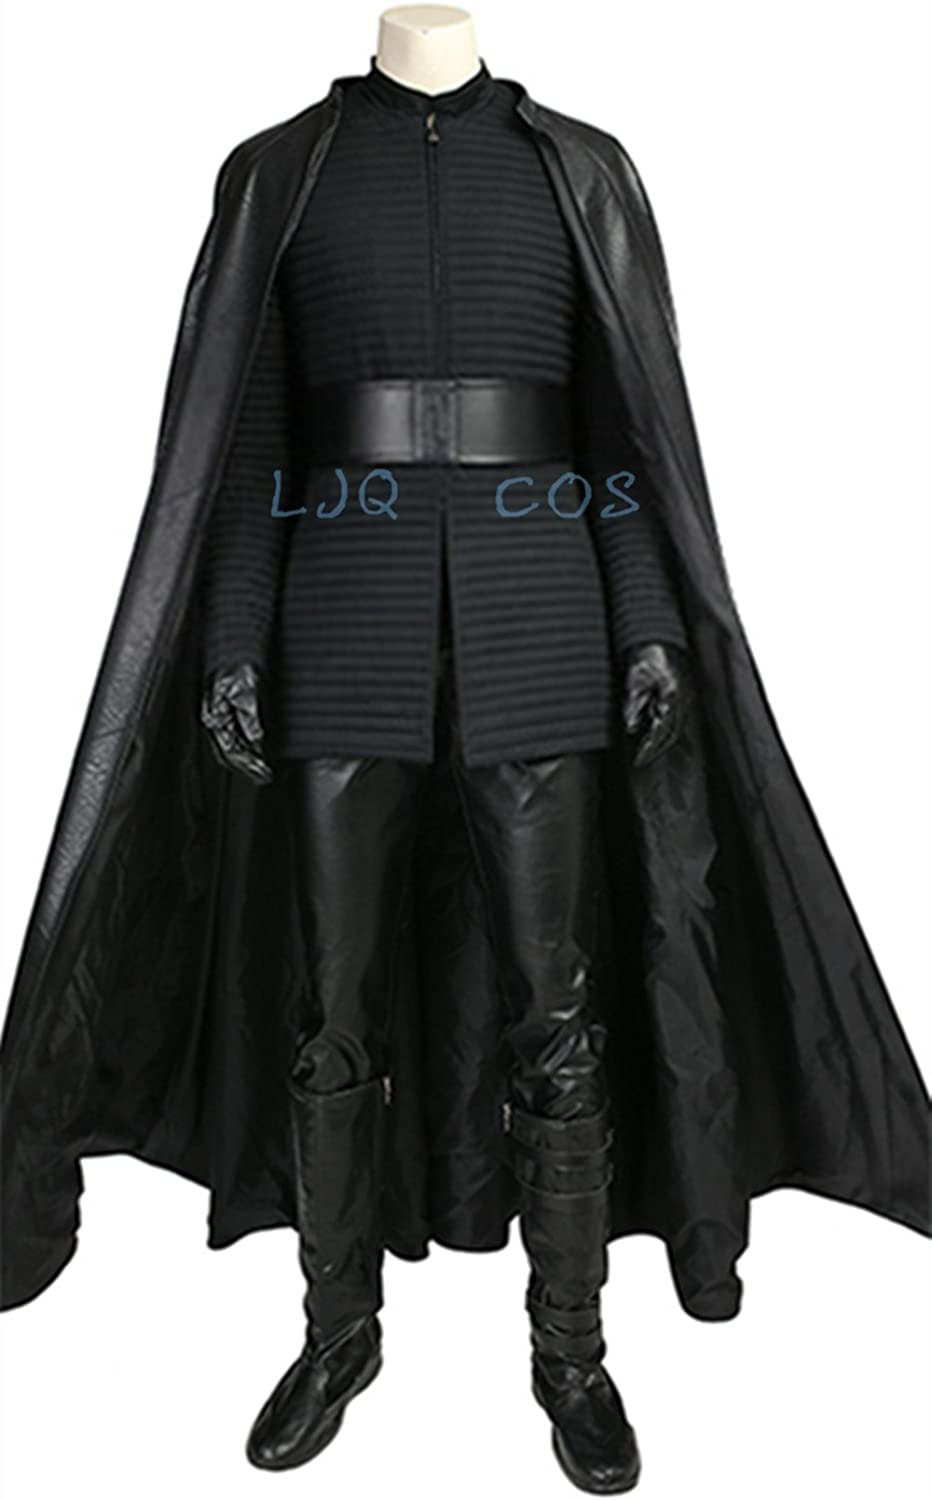 Costumes Halloween Star Wars The Last Jedi Kylo Ren Costume Outfit Movie Cosplay Robes Cosys Cc